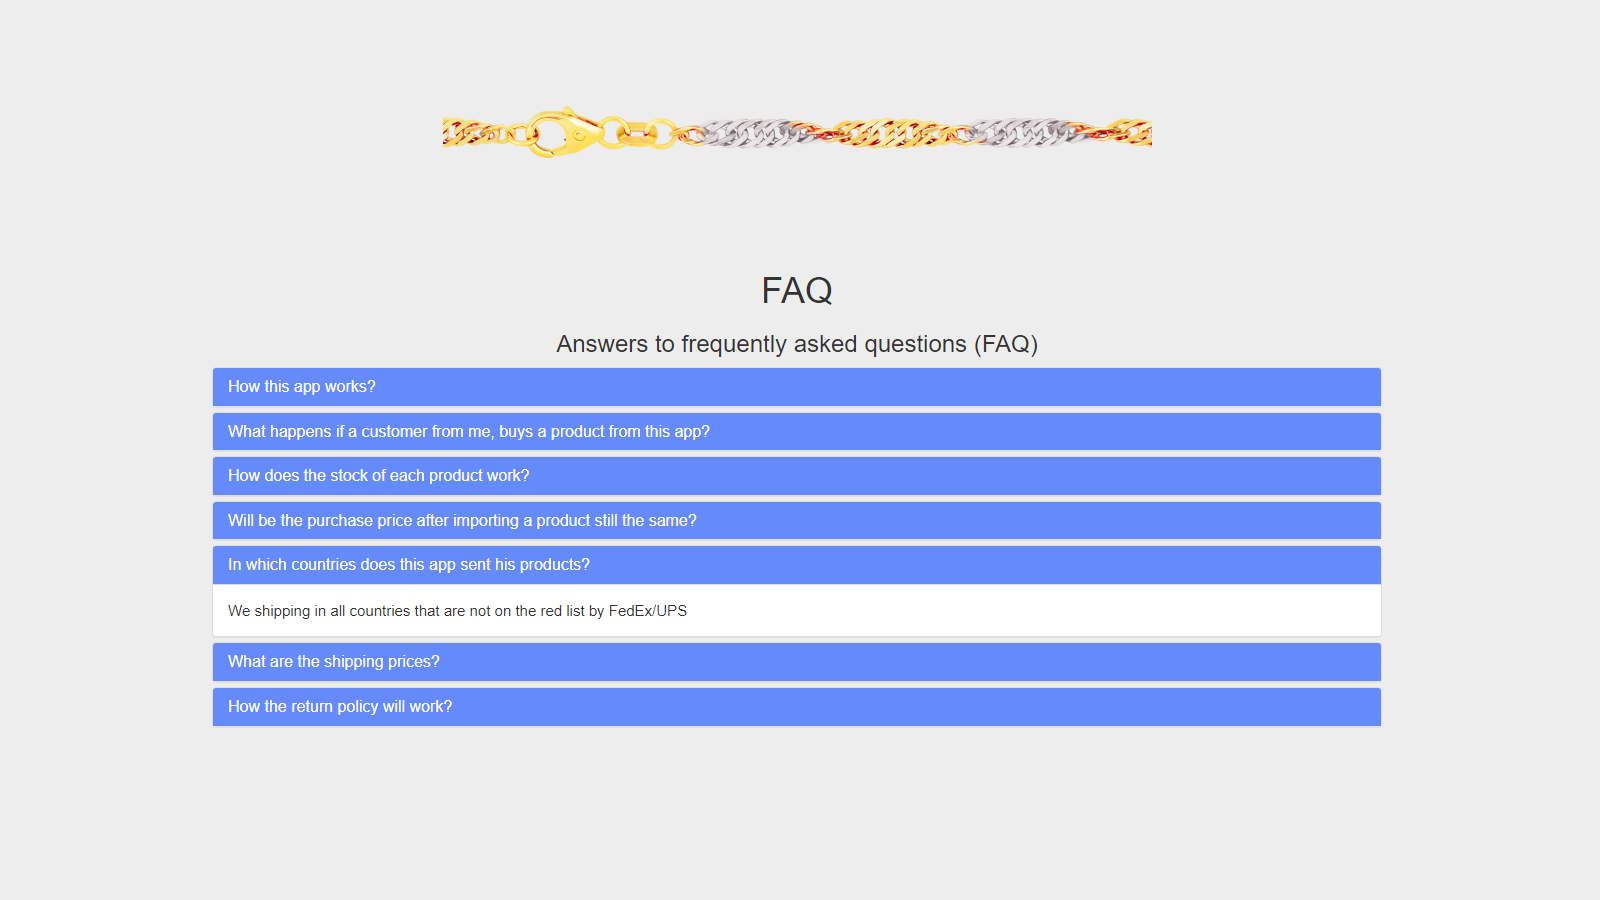 FAQ about our app and service